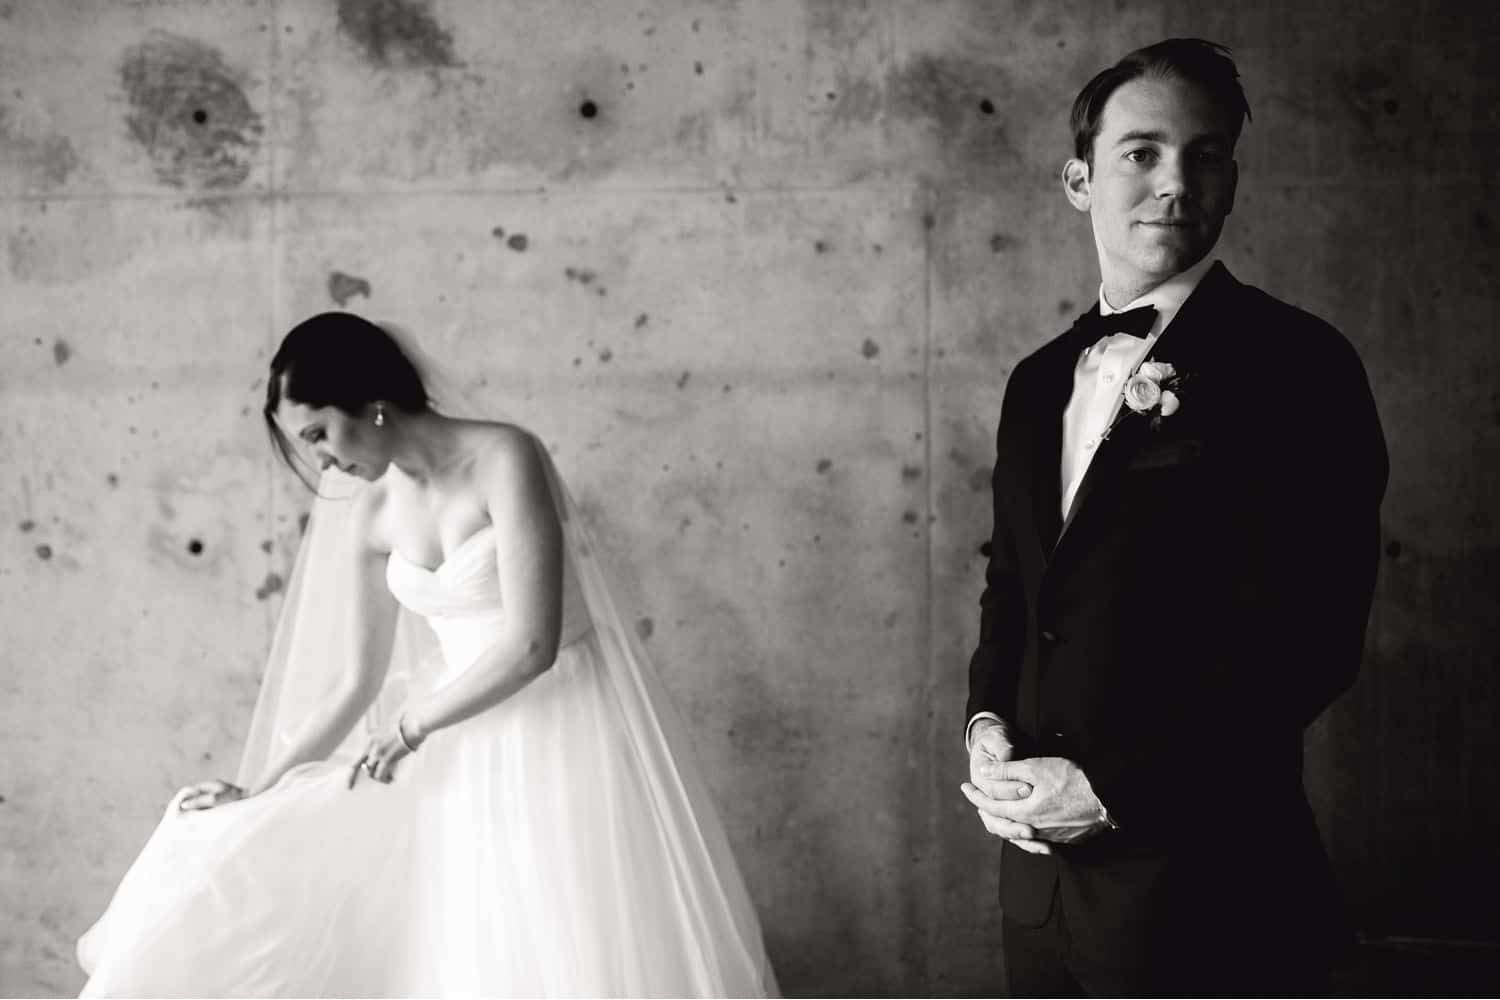 A bride adjusts her train as the groom glances at the camera in this black and white portrait from their wedding day